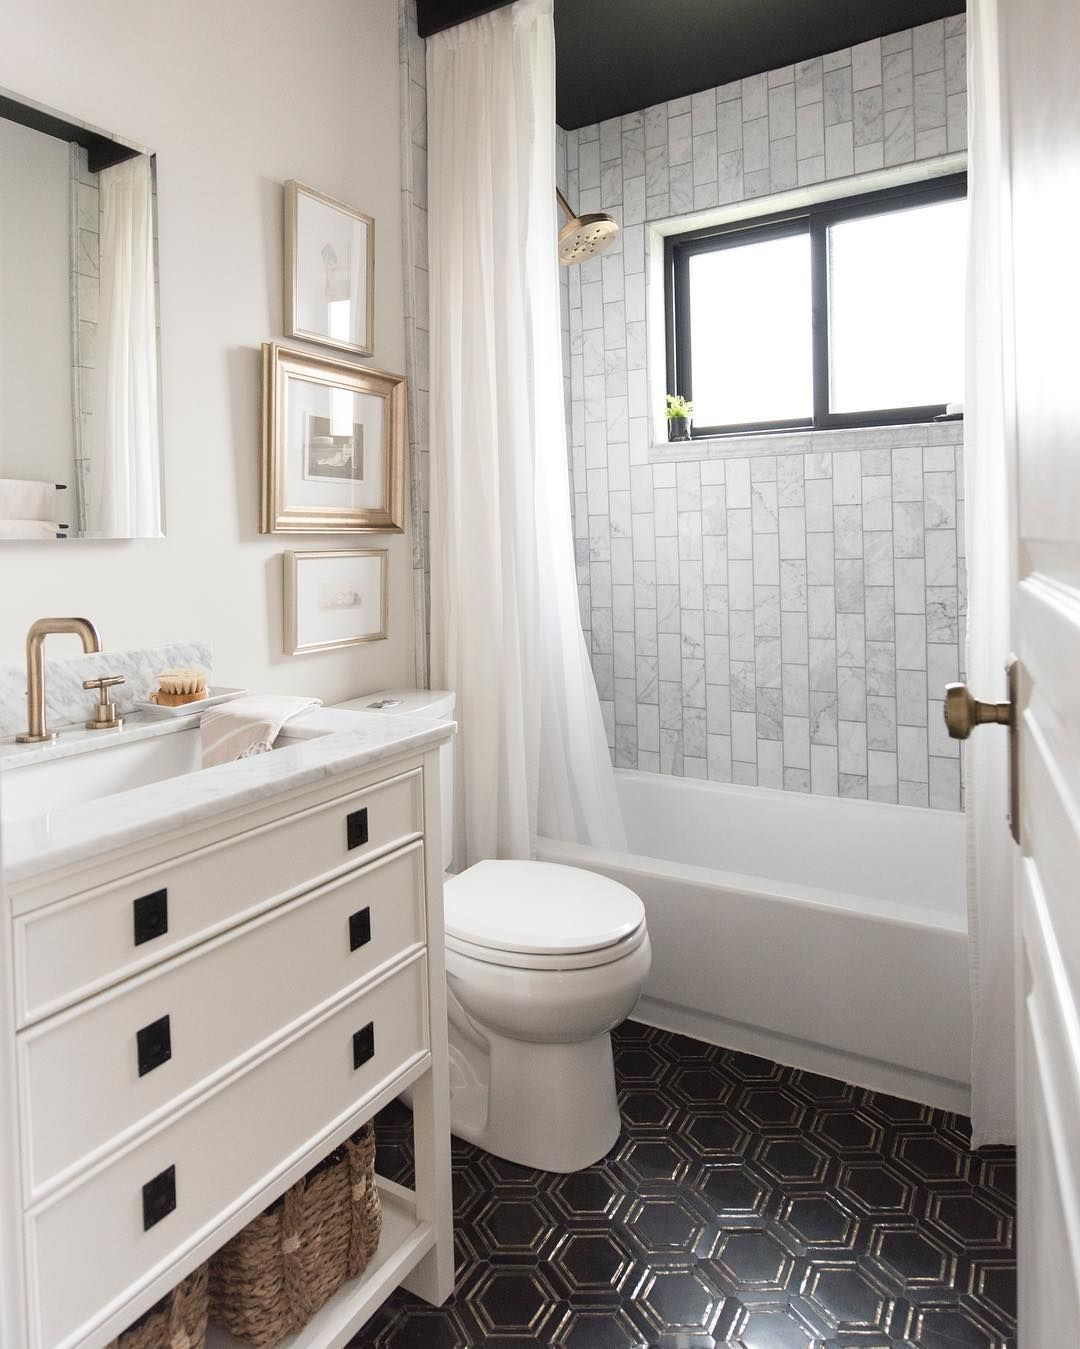 Sarah Gibson Room For Tuesday On Instagram Plans This Weekend Operation Guest Bathroom Renovatio Bathroom Decor Guest Bathroom Renovation Bathrooms Remodel